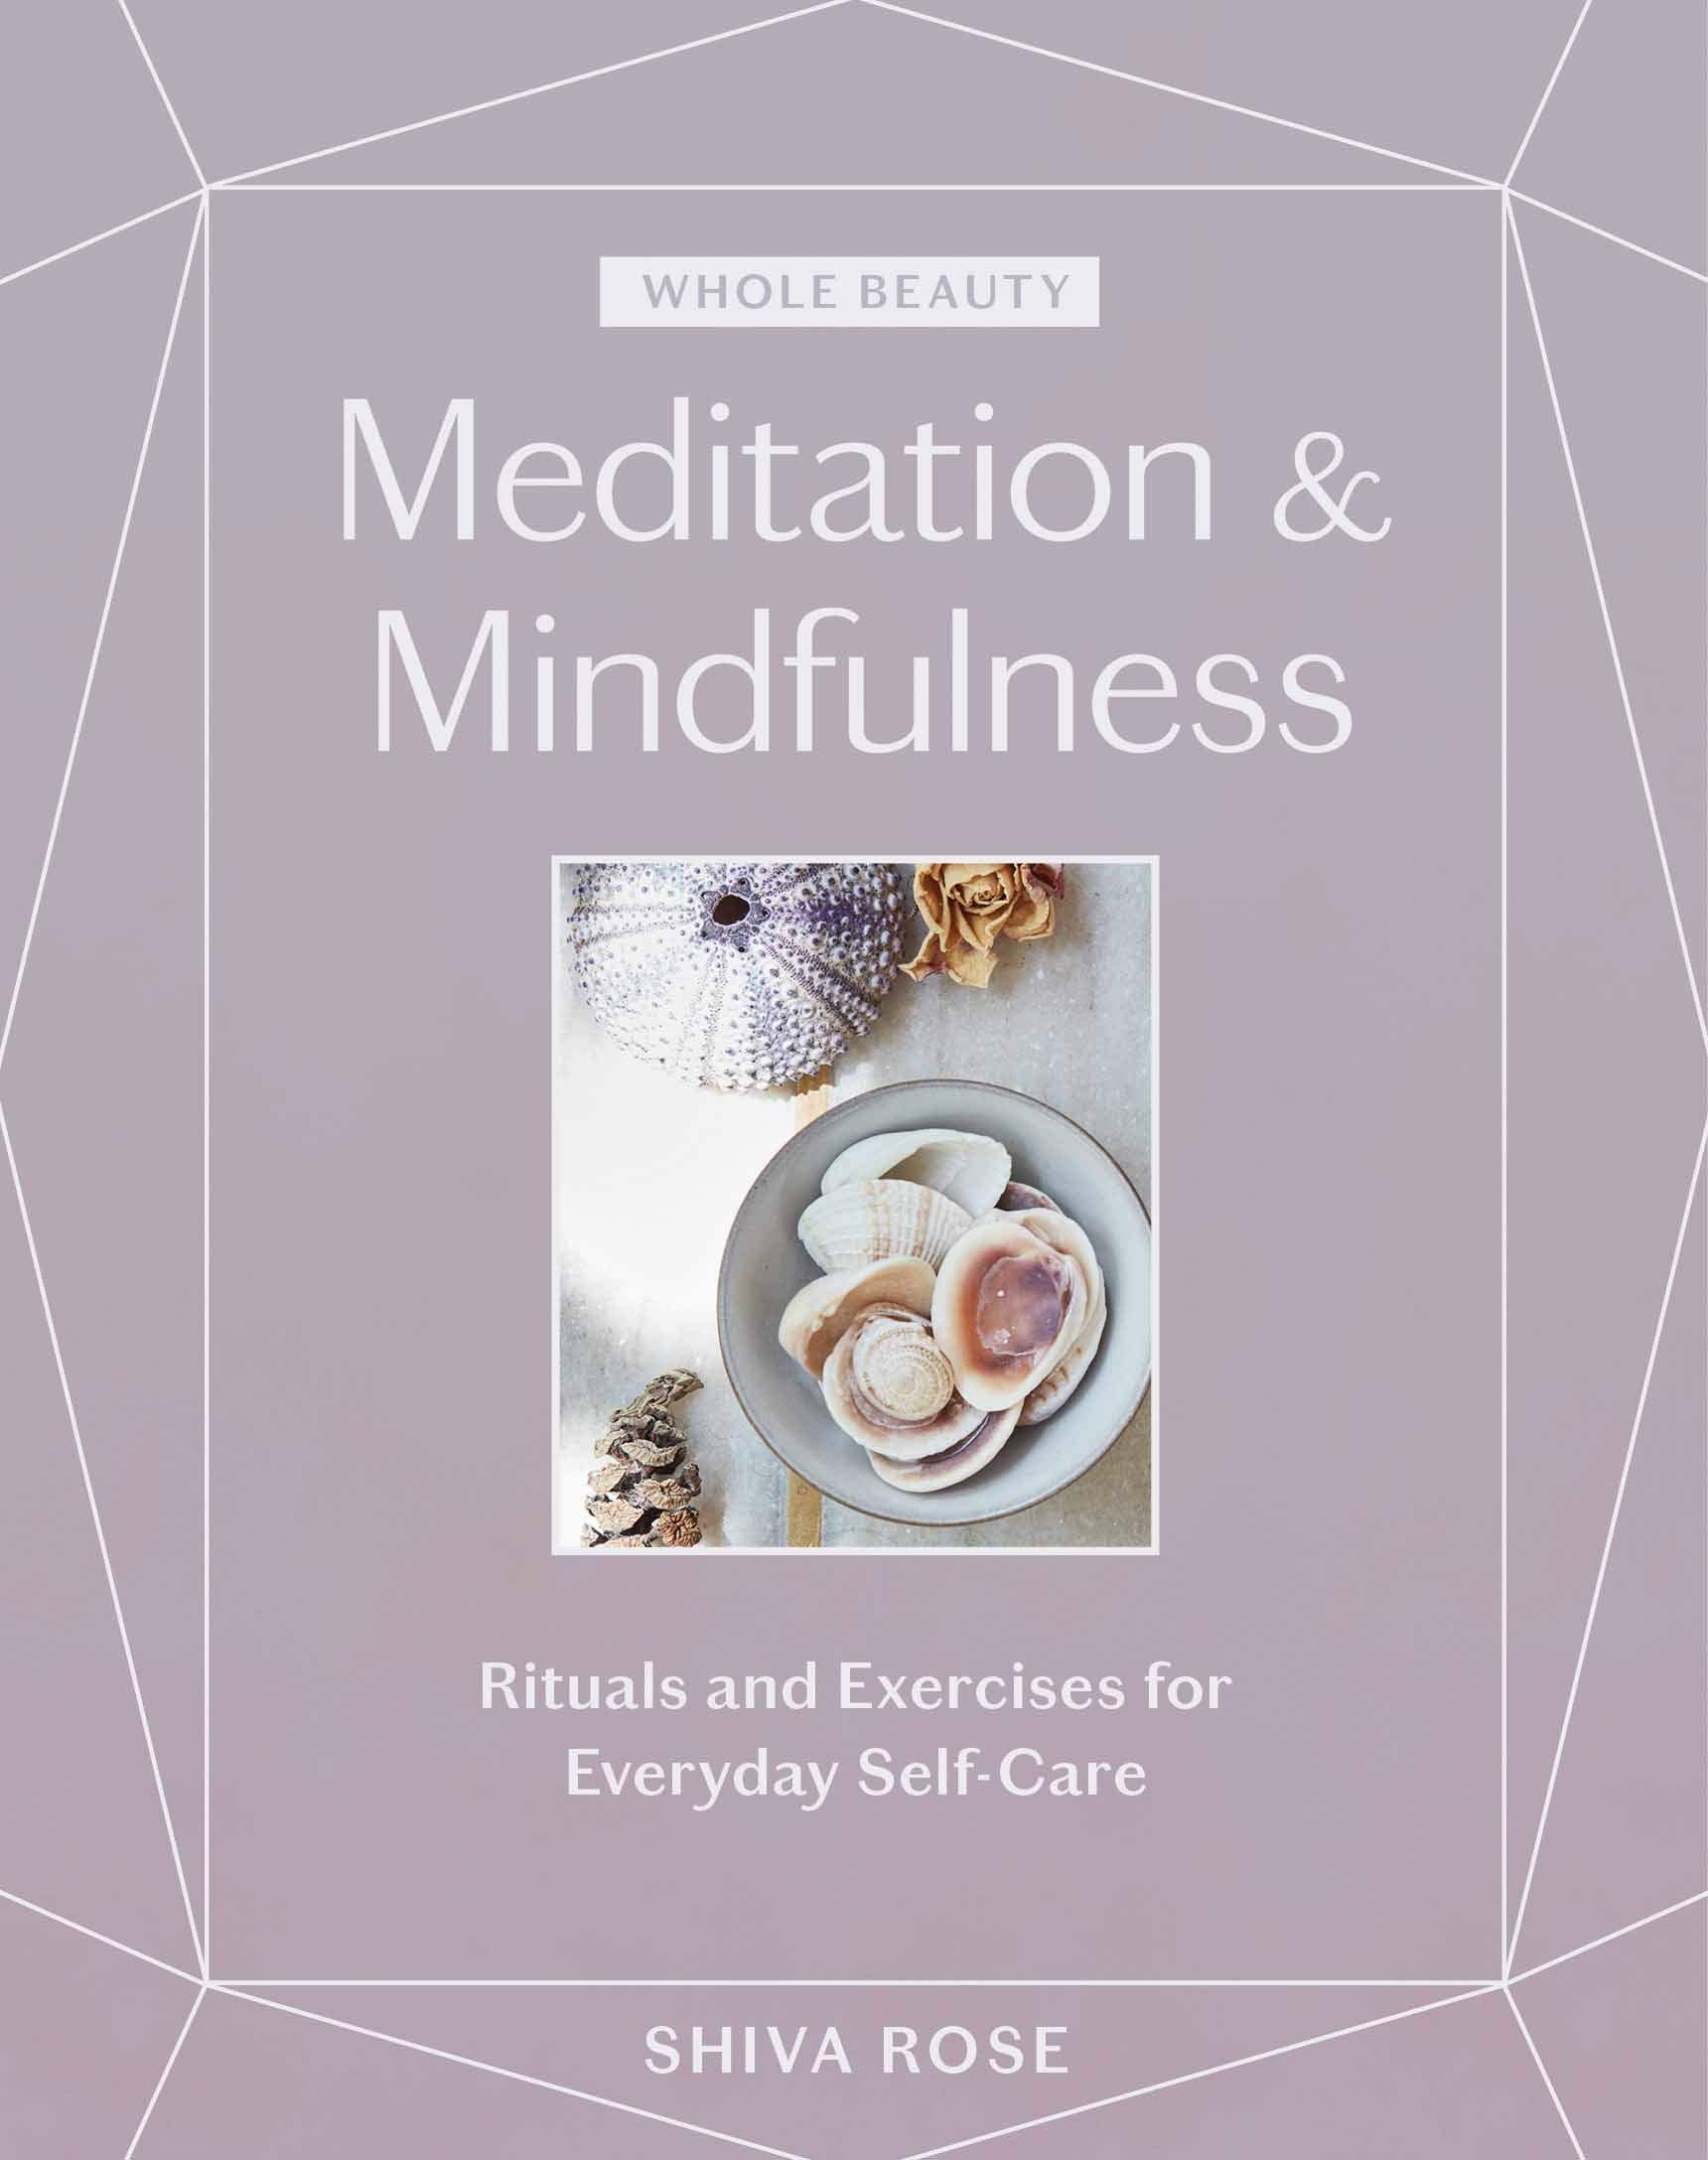 Whole Beauty: Meditation & Mindfulness: Rituals and Exercises for Everyday Self-Care by  Shiva Rose